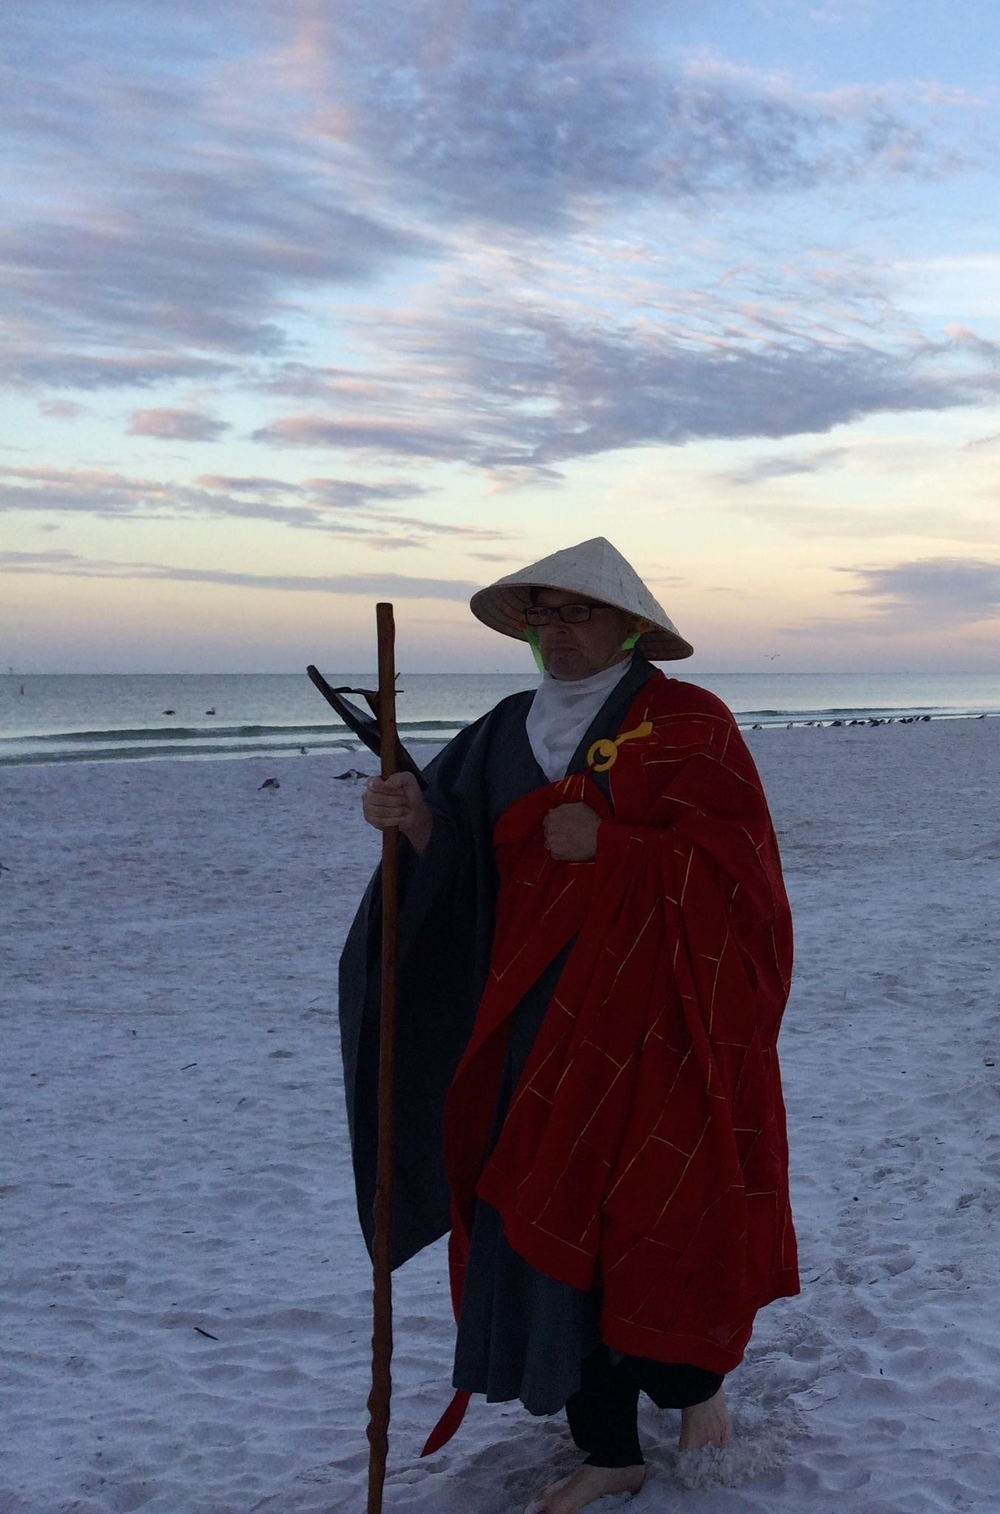 """Vast is the robe of liberation, a formless field of benefaction. I wear the Tathagata's teachings, saving all sentient beings.""  Osho leading kinhin, walking Zen on Siesta Key beach during sunrise meditation."